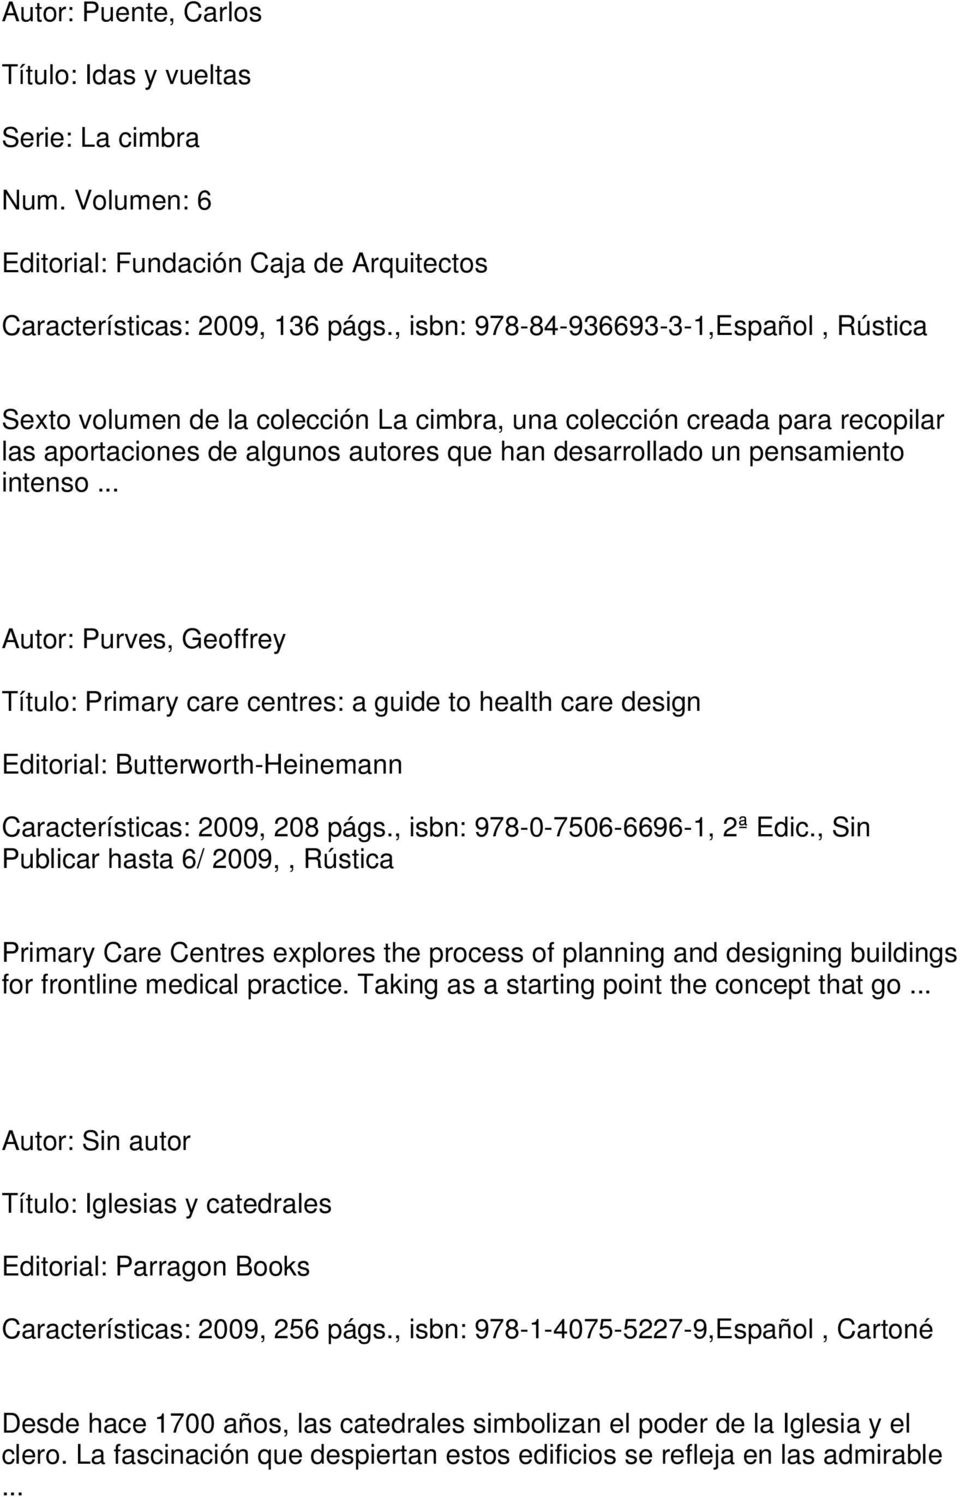 .. Autor: Purves, Geoffrey Título: Primary care centres: a guide to health care design Editorial: Butterworth-Heinemann Características: 2009, 208 págs., isbn: 978-0-7506-6696-1, 2ª Edic.